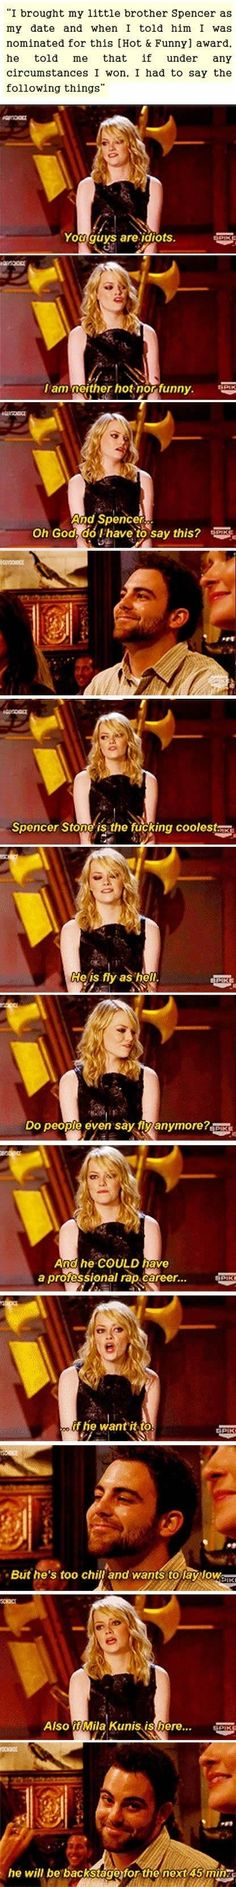 Emma Stone - funny pictures - funny photos - funny images - funny pics - funny quotes - funny animals @ humor